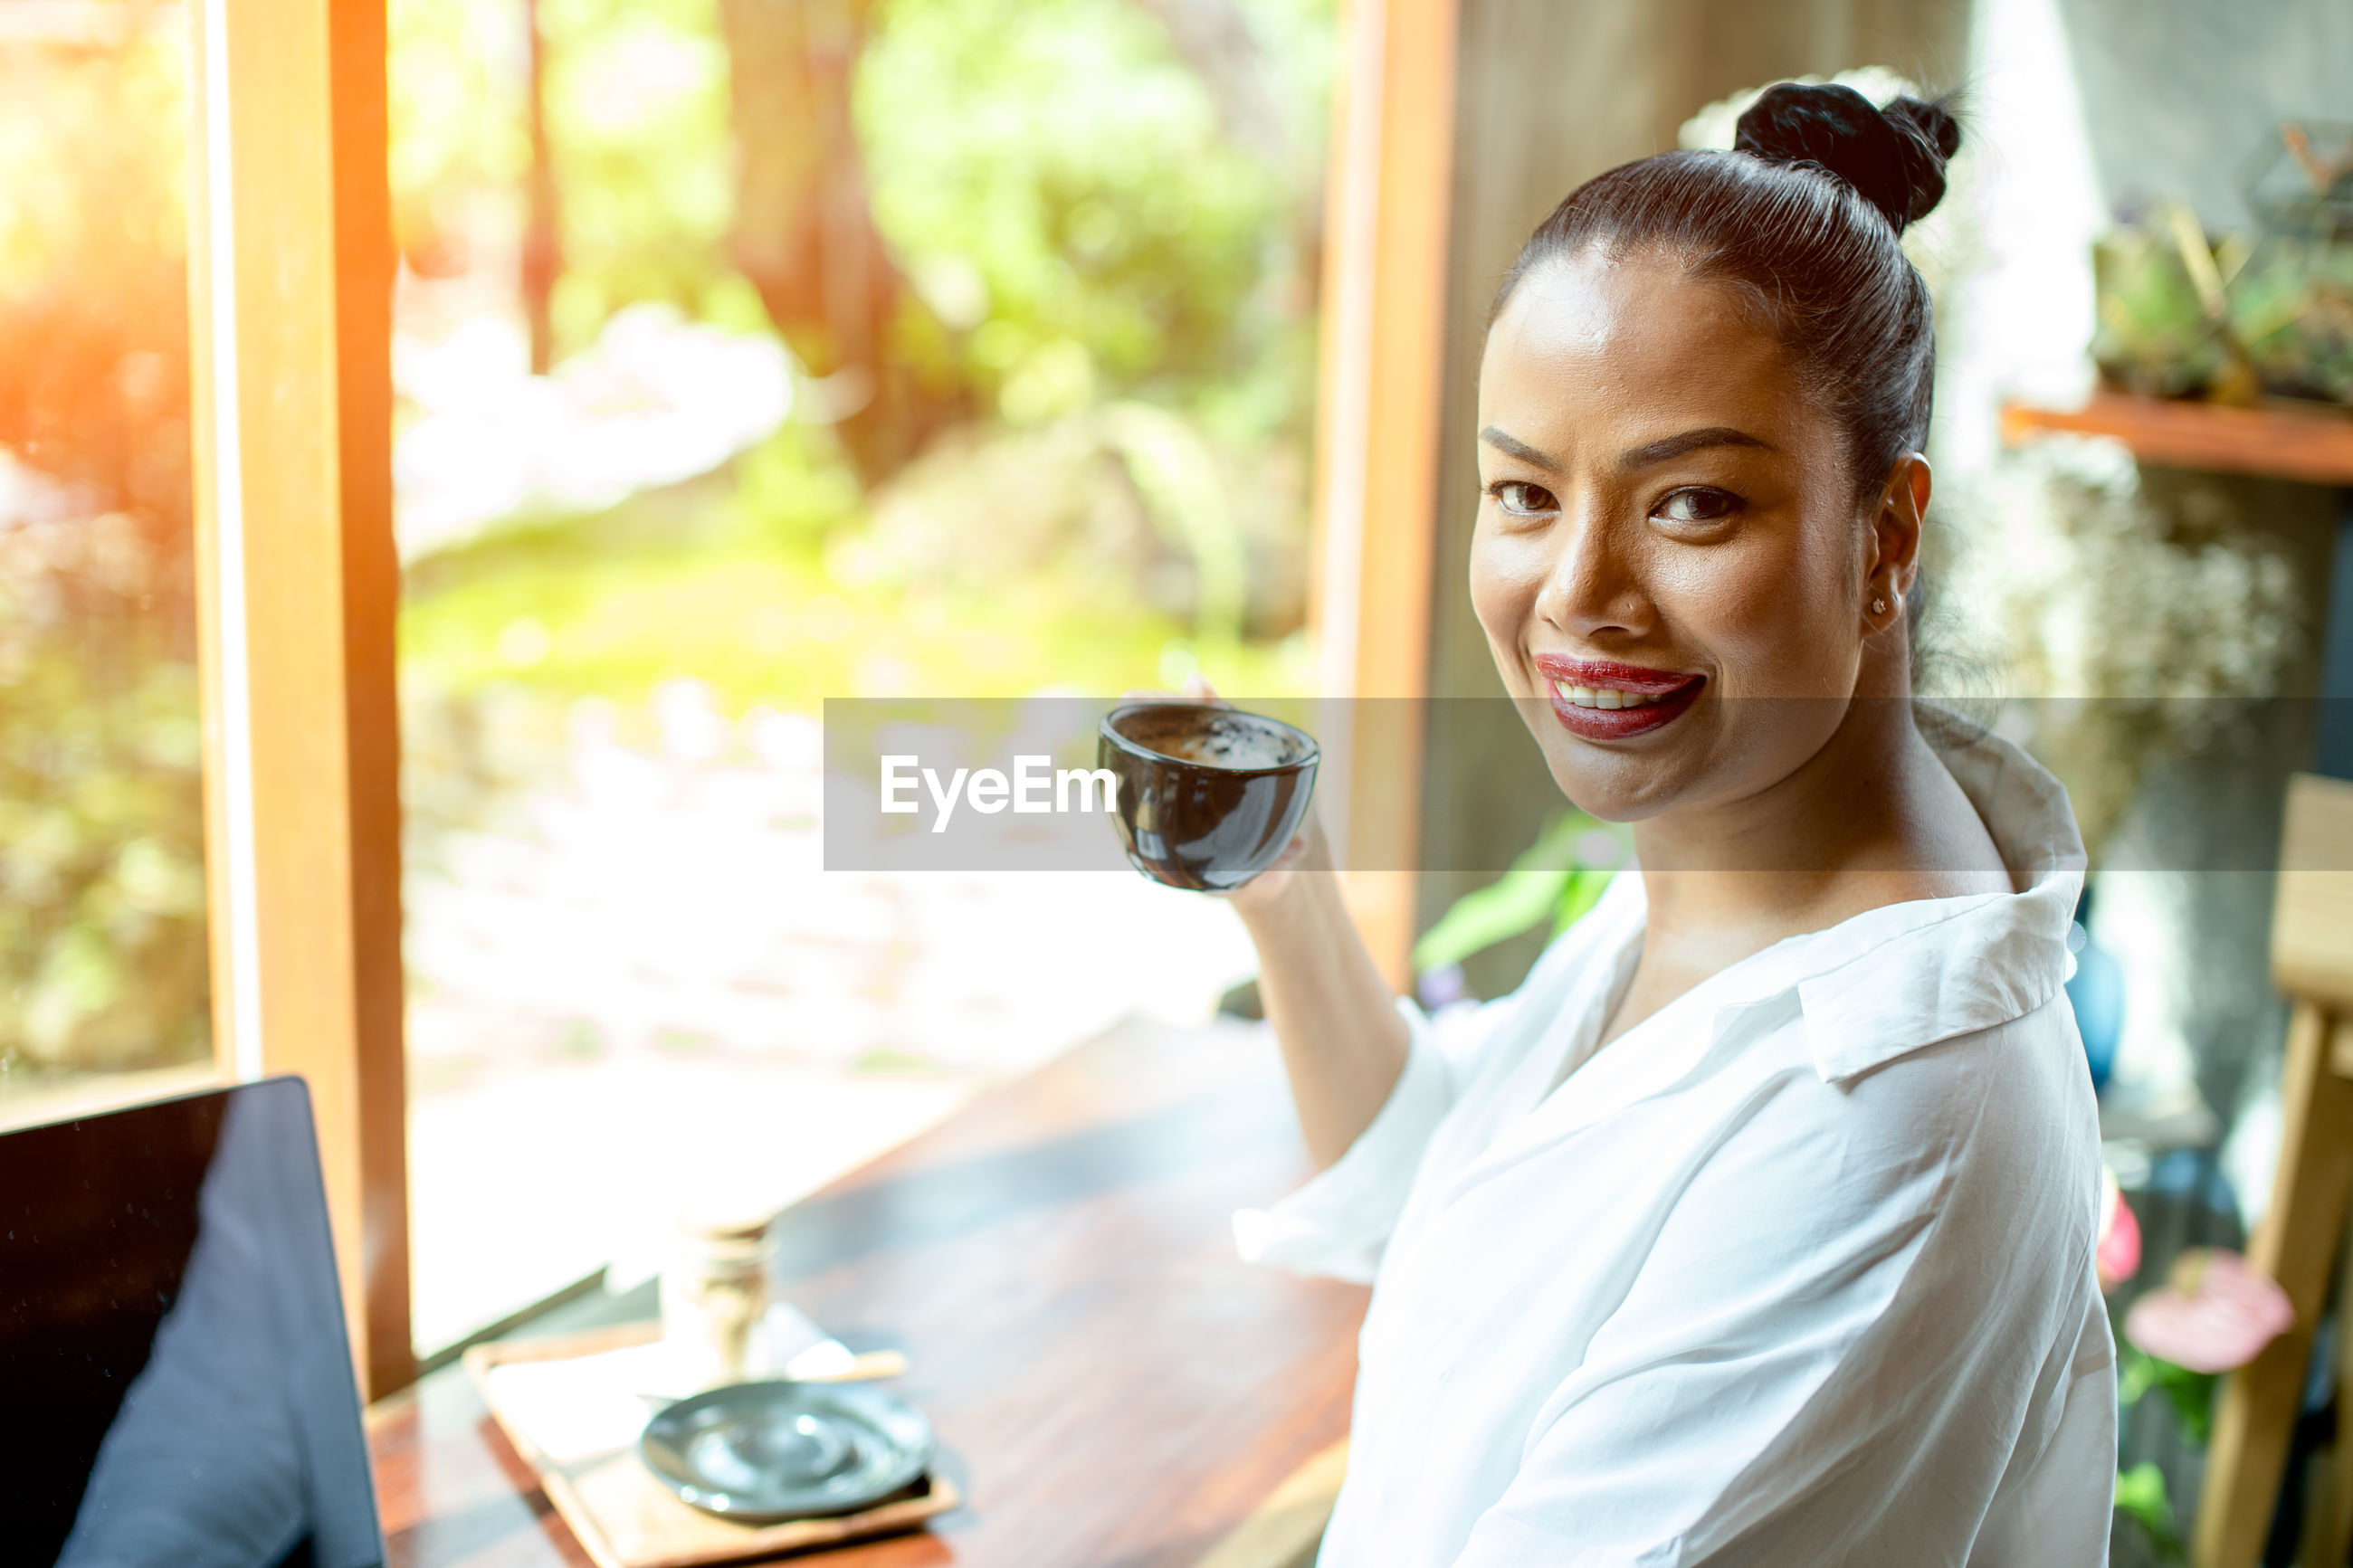 Portrait of smiling woman sitting in cafe